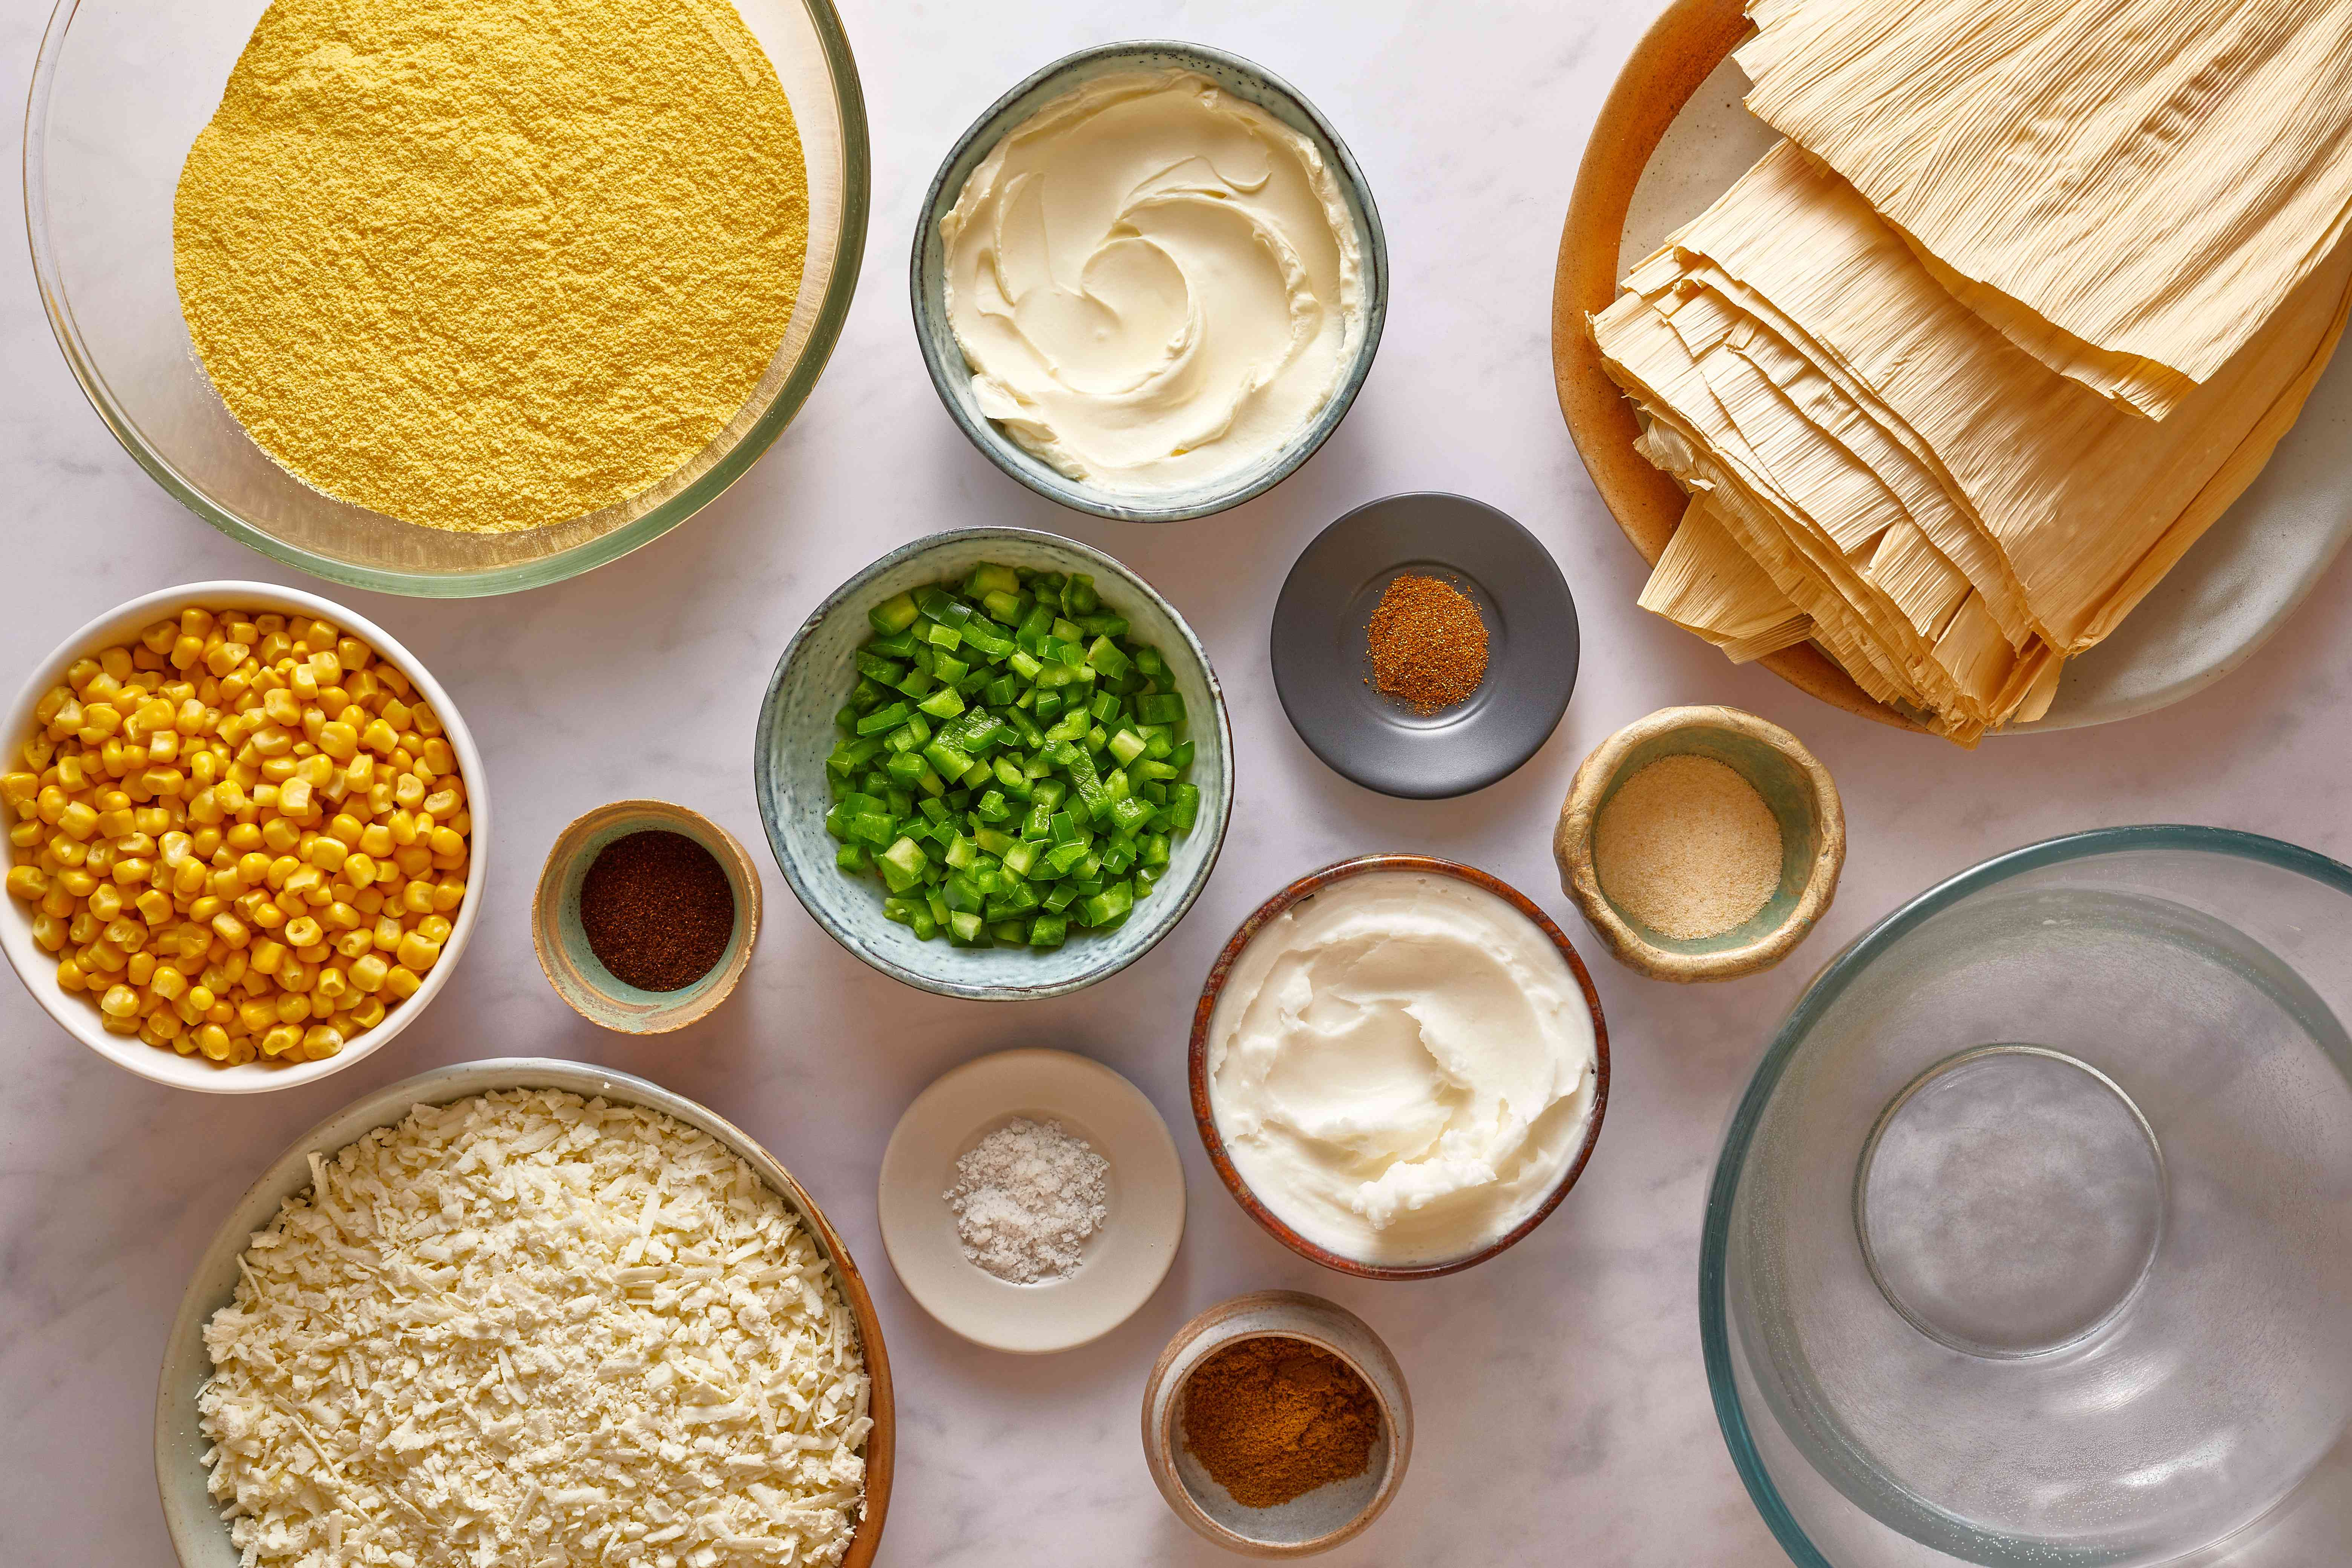 Corn, Green Chile, and Cheese Tamales ingredients